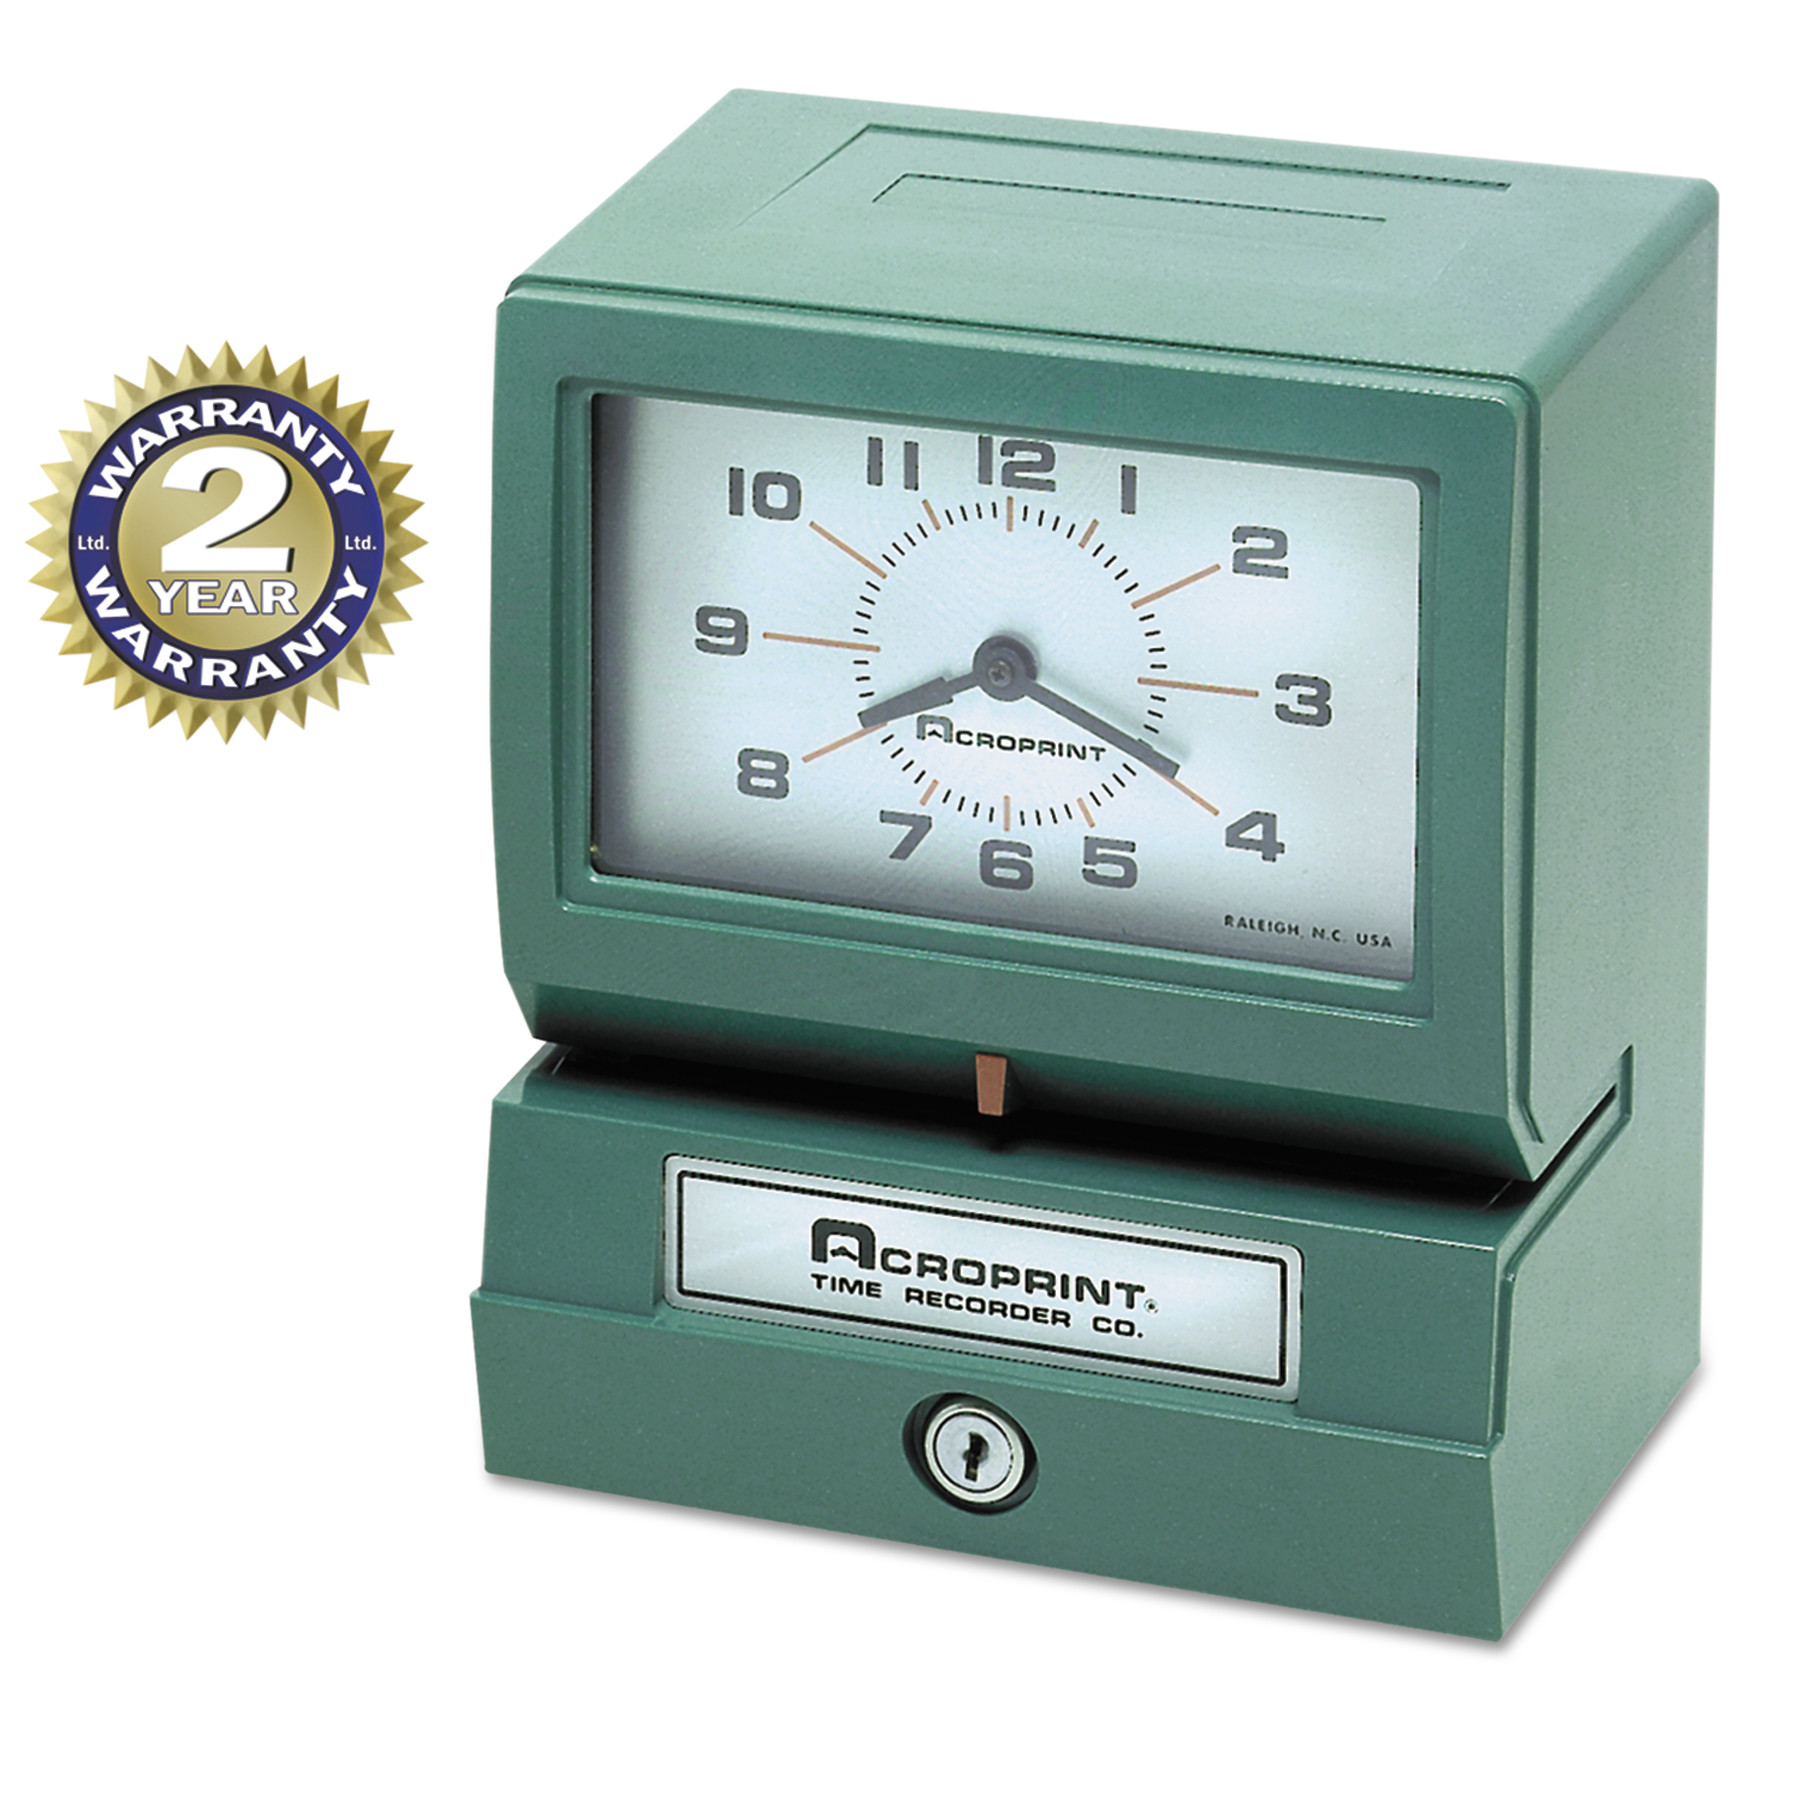 Acroprint Model 150 Heavy-Duty Analog Automatic Print Time Clock -ACP01207040A by ACRO PRINT TIME RECORDER